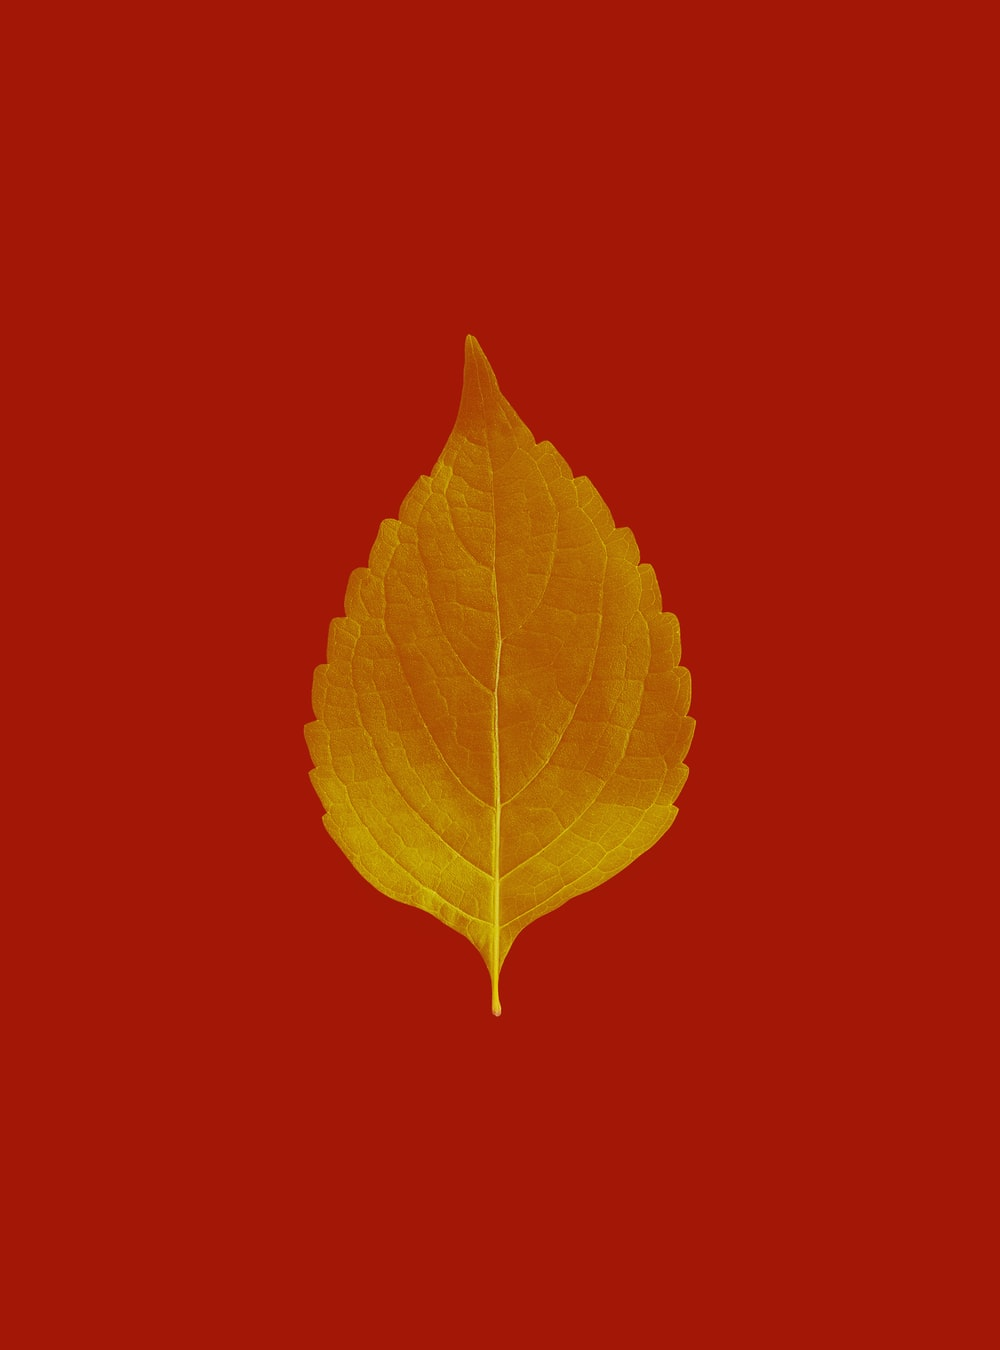 yellow leaf on red background